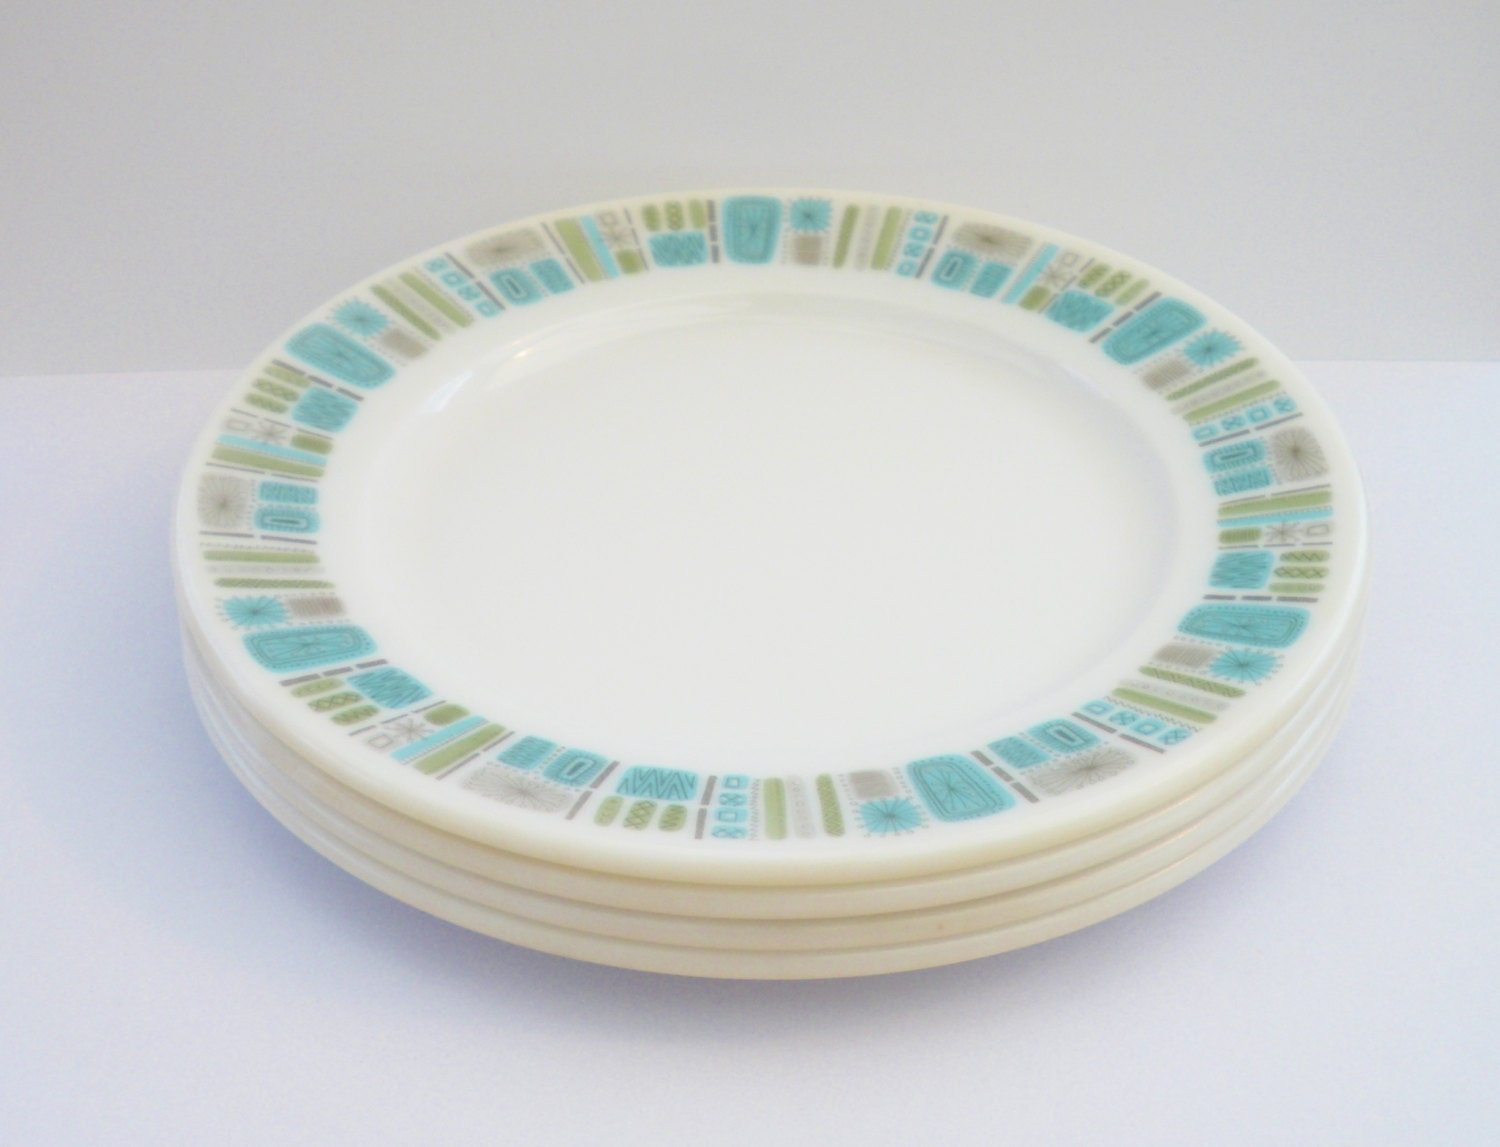 Set Of 4 Vintage Melamine Plate Turquoise And Olive Colour : turquoise melamine dinnerware - pezcame.com